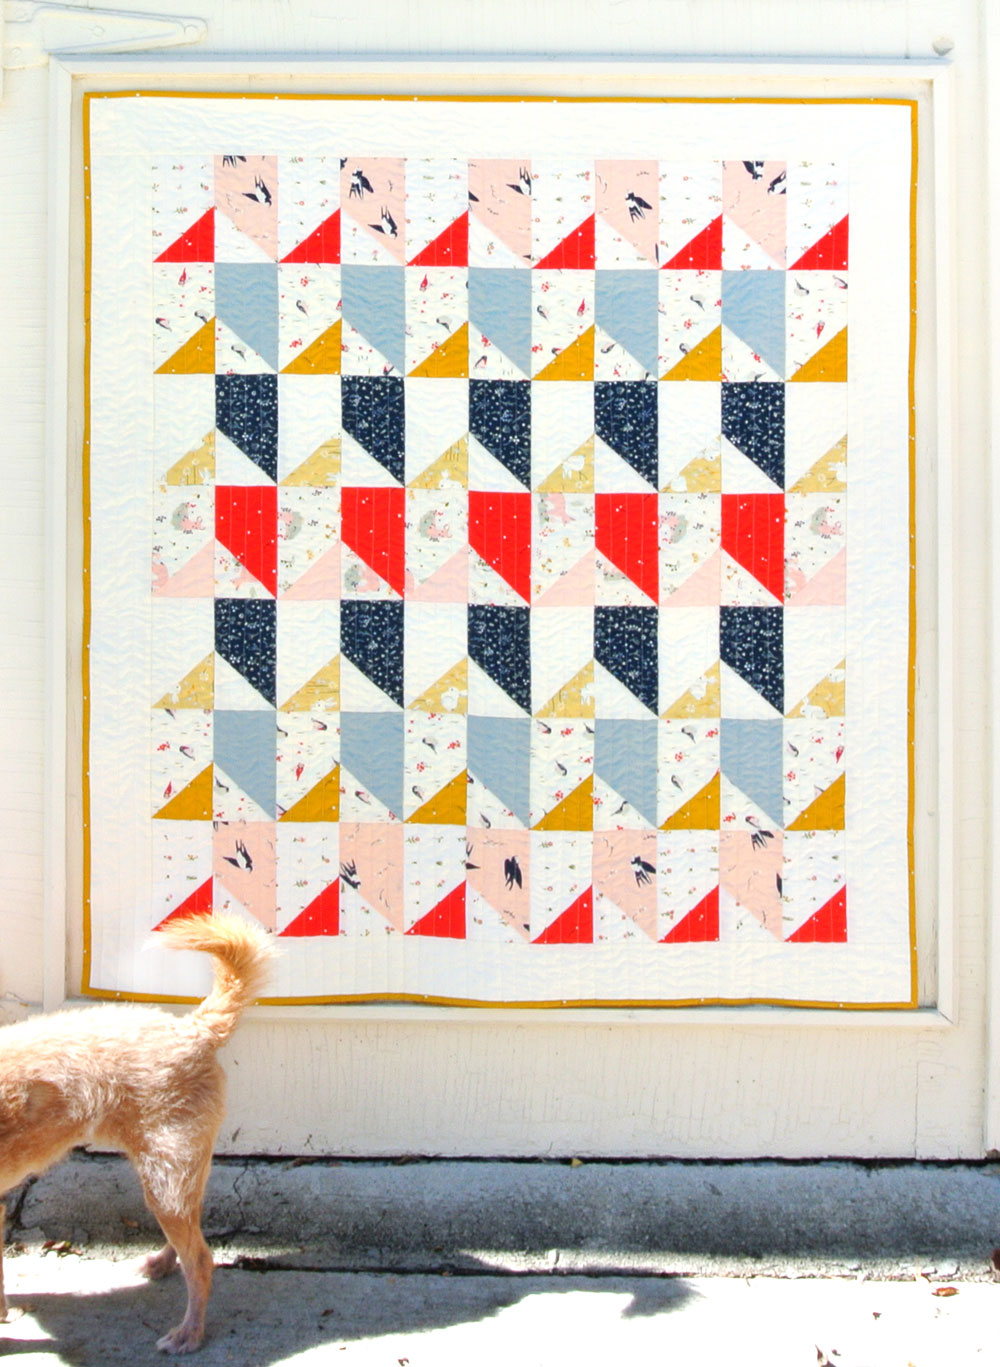 Free Little Houses Baby Quilt Pattern | Suzy Quilts https://suzyquilts.com/free-little-houses-baby-quilt-pattern